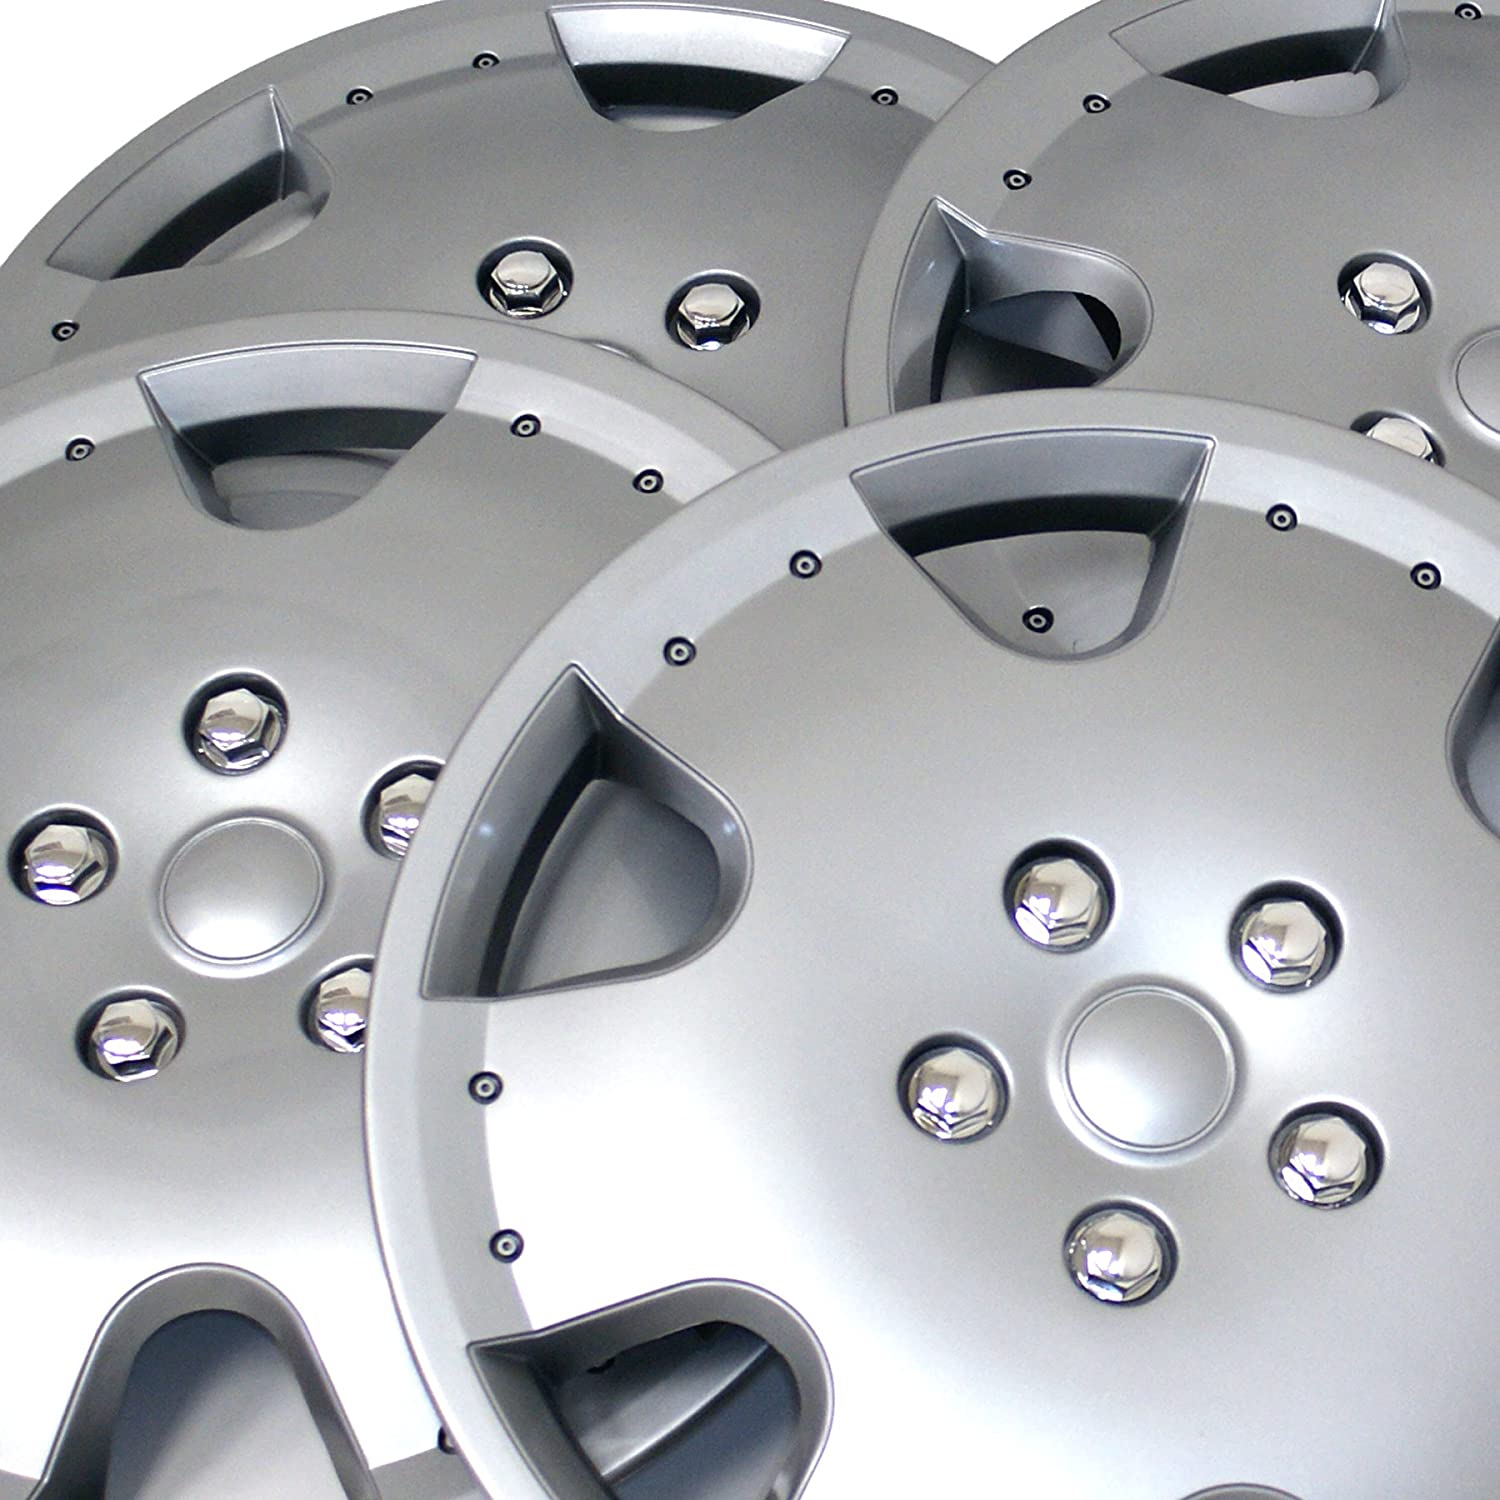 Pop-On 15-Inches Metallic Silver Hubcaps Wheel Cover TuningPros WSC3-720S15 4pcs Set Snap-On Type